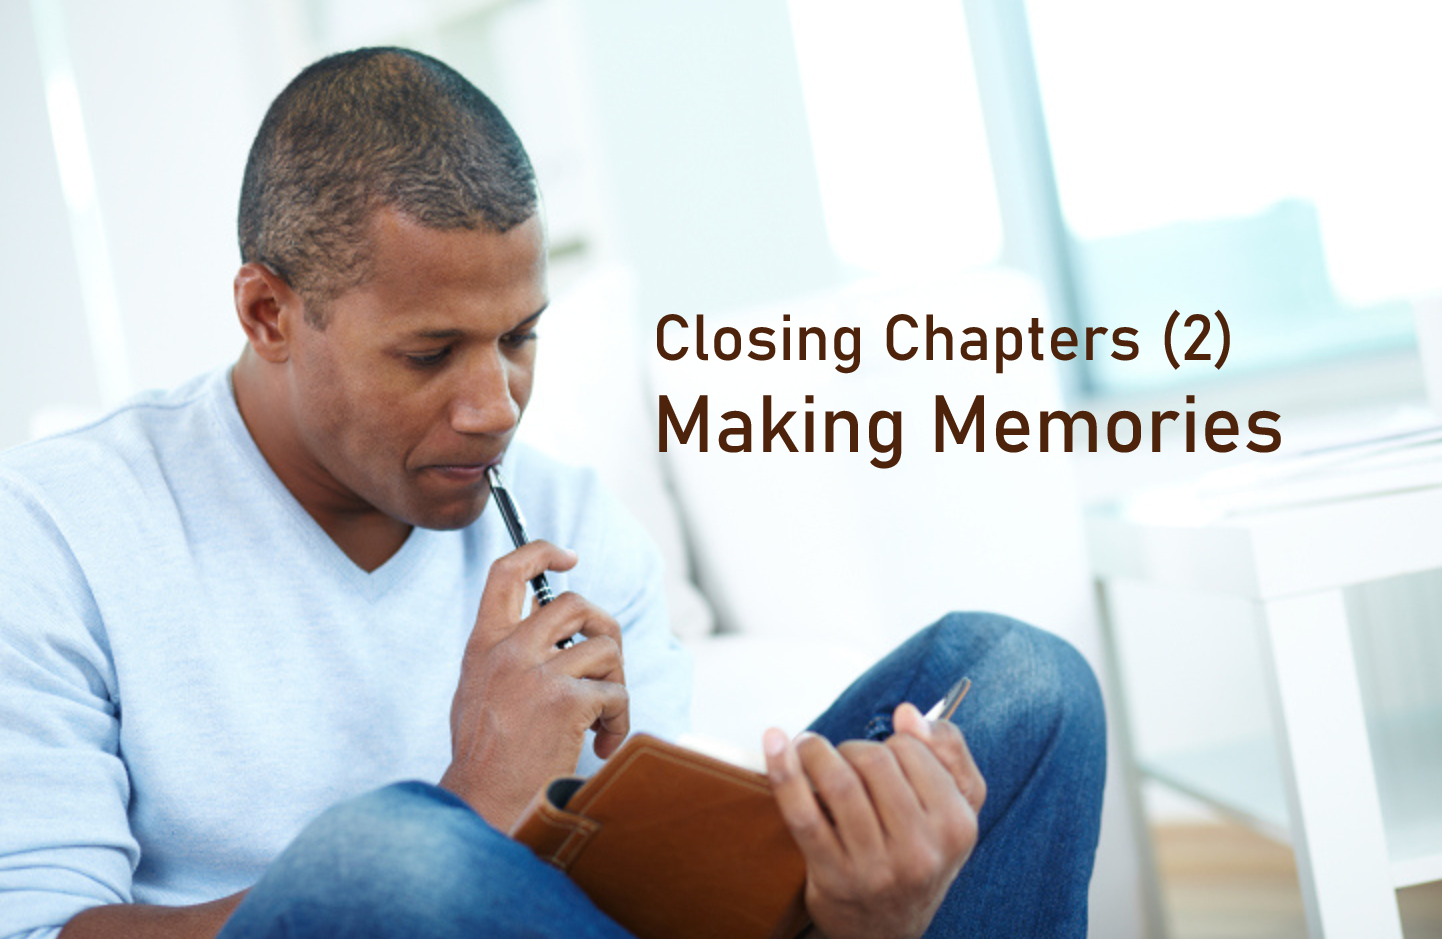 Closing Chapters – Making memories (part 2 of 4)